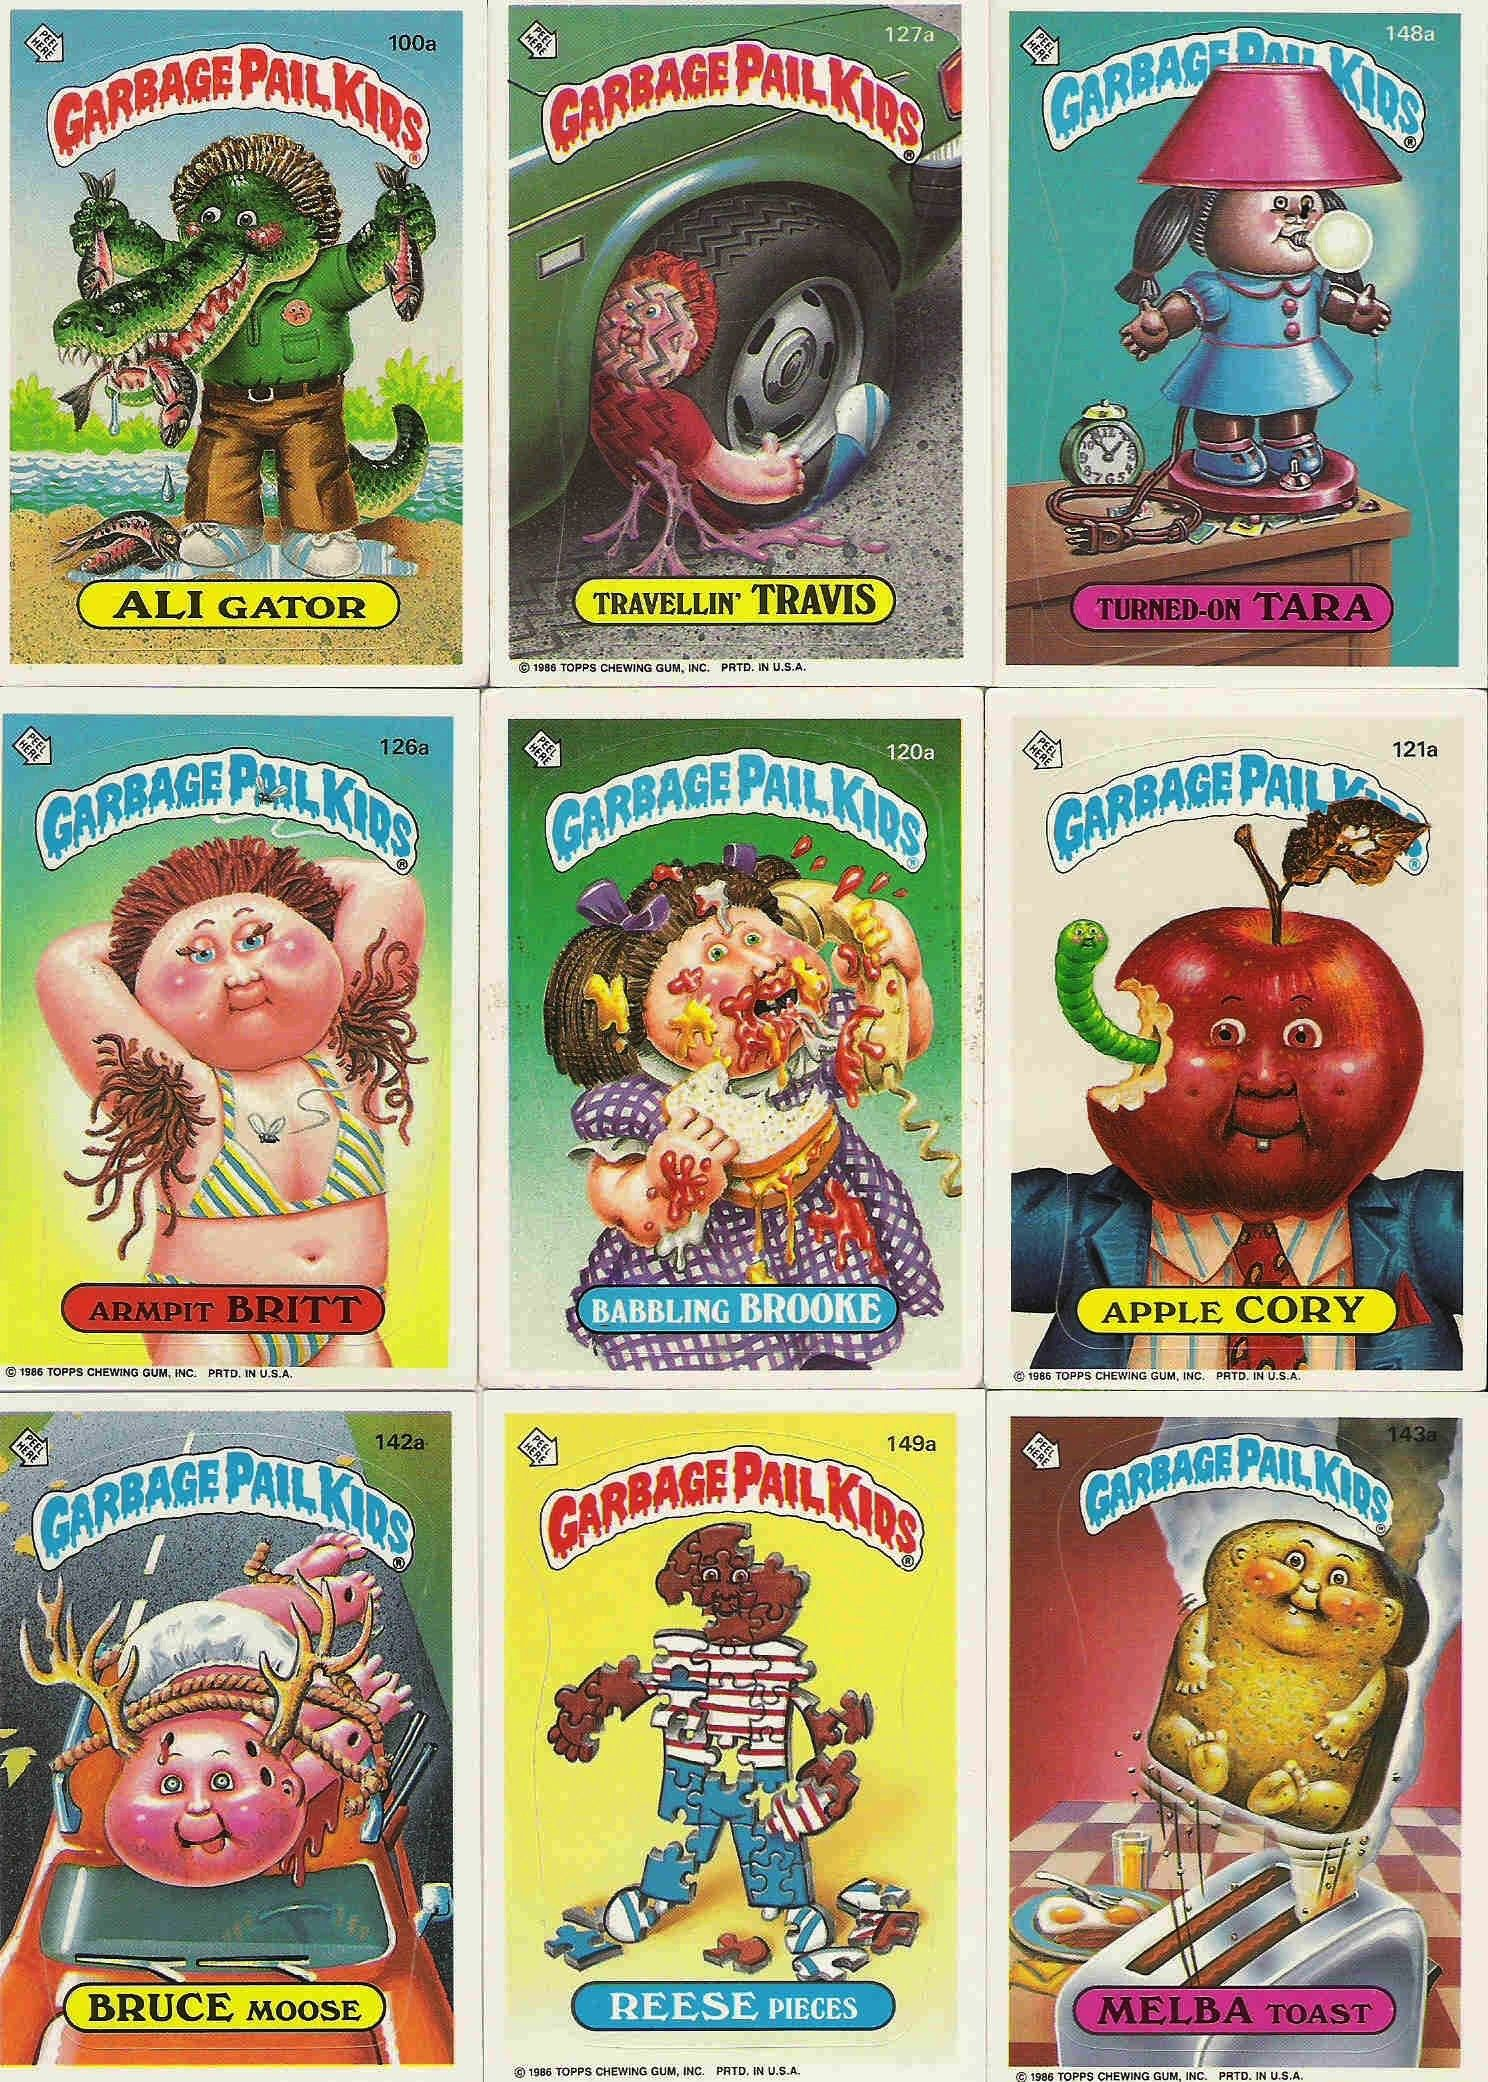 Google Image Result For Http Ny Image0 Etsy Com Il Fullxfull 123451216 Jpg Garbage Pail Kids Garbage Pail Kids Cards My Childhood Memories